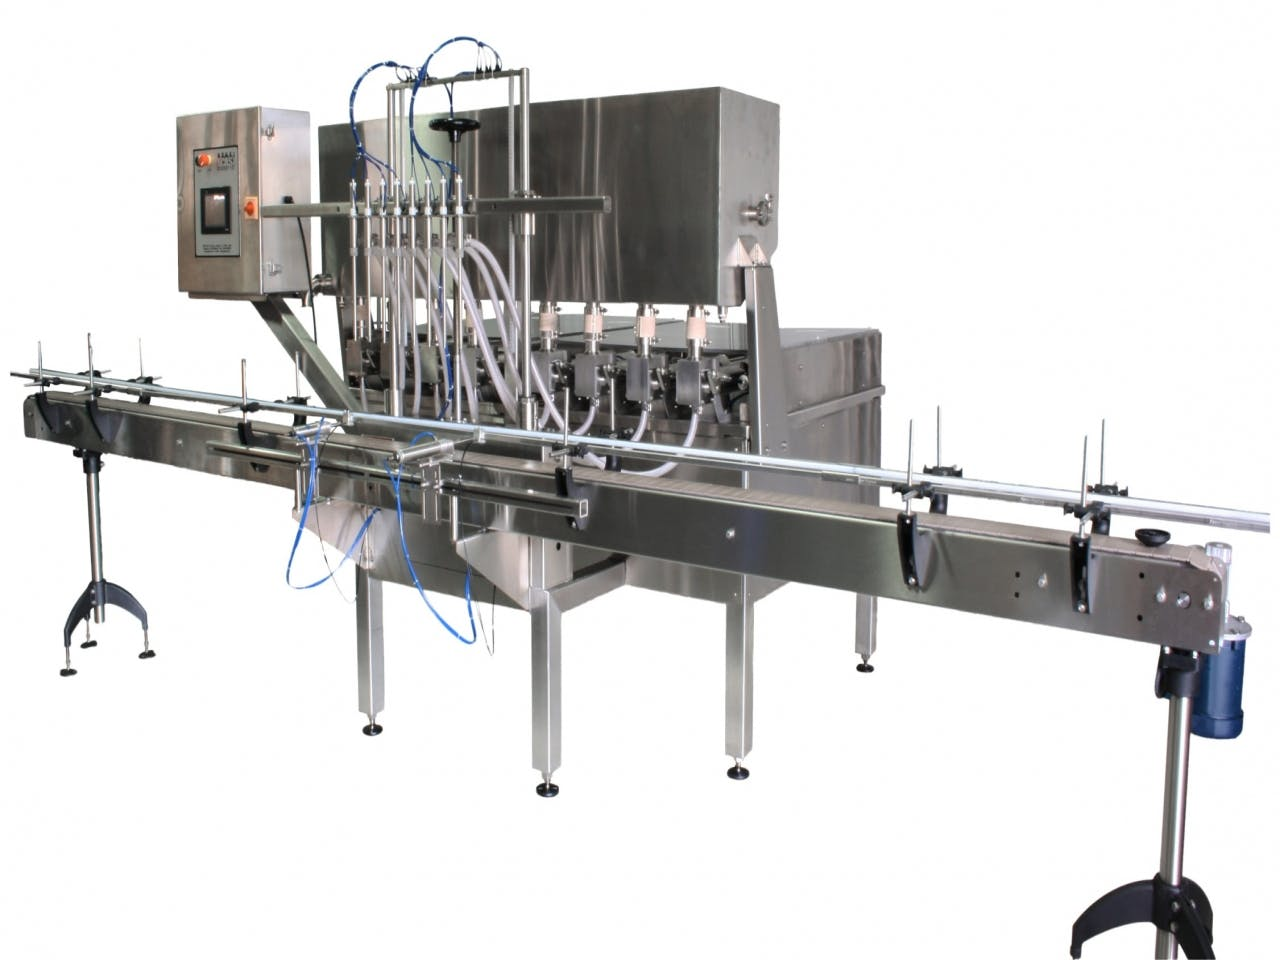 Piston Filler - Model TruPiston-8 Bottle filler sold by ACASI Machinery